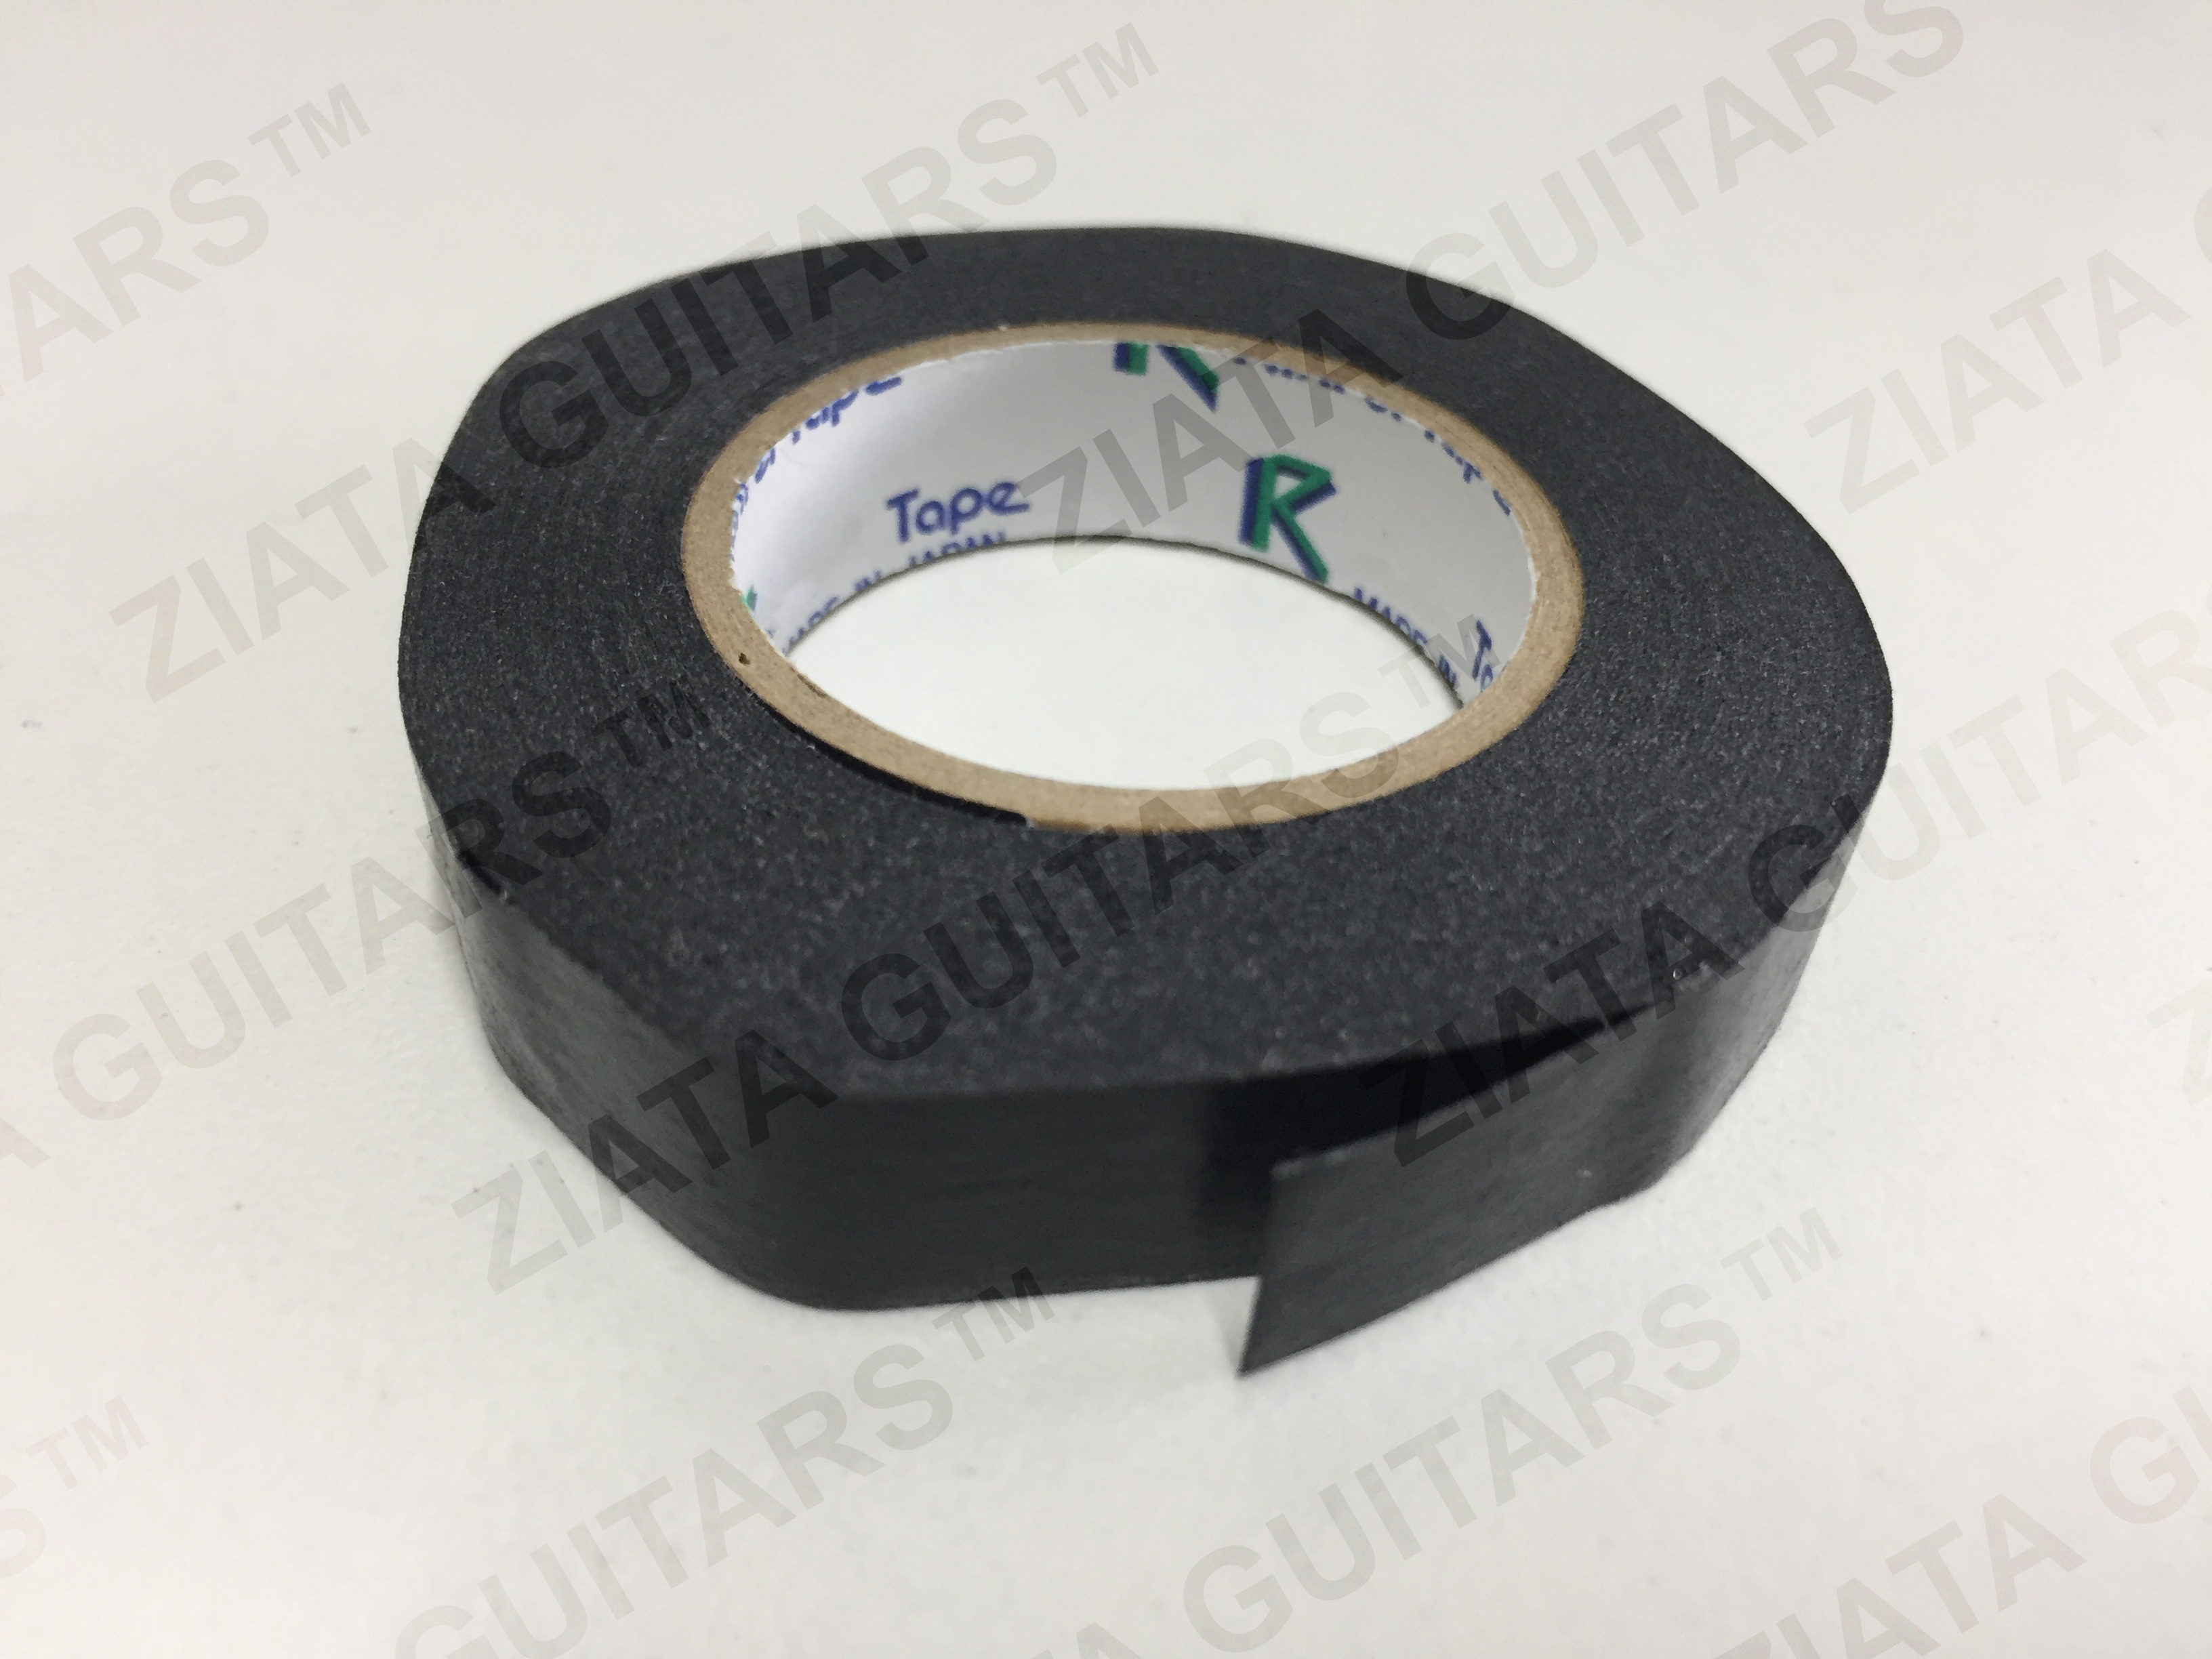 10mm Guitar Pickup Paper Tape - Black